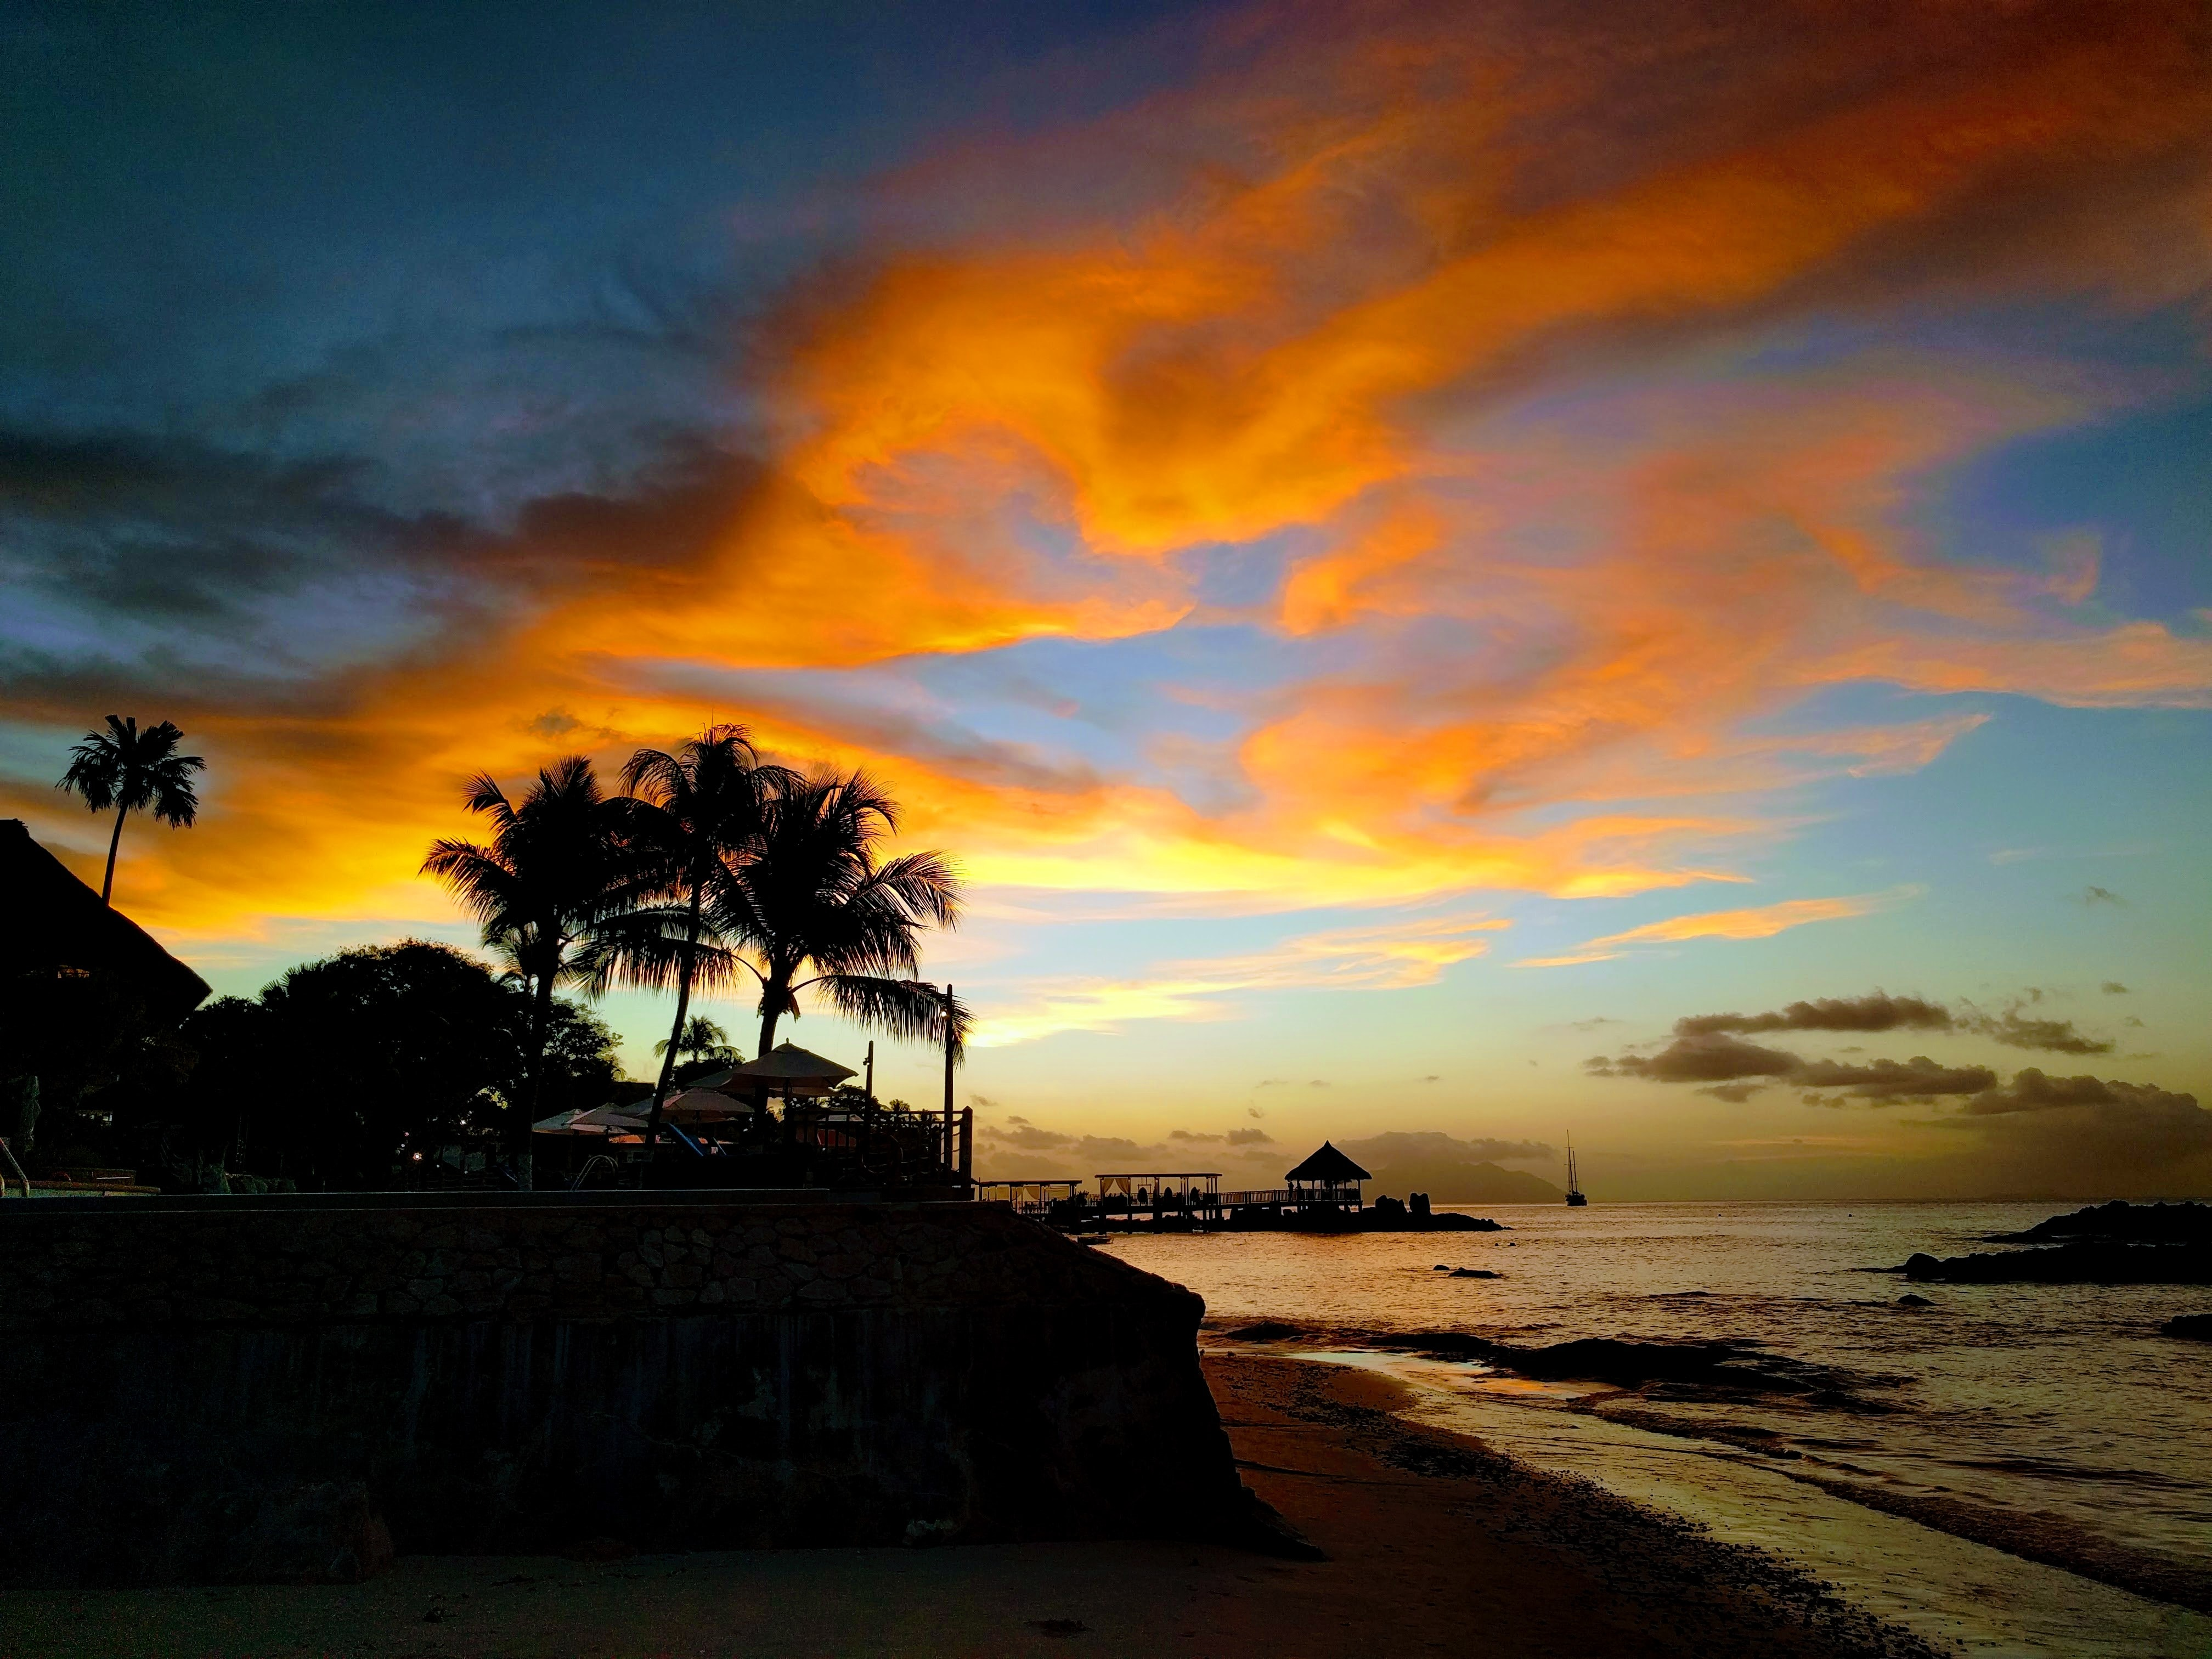 Sunlit clouds during sunset at the Bel Ombre beach, Seychelles